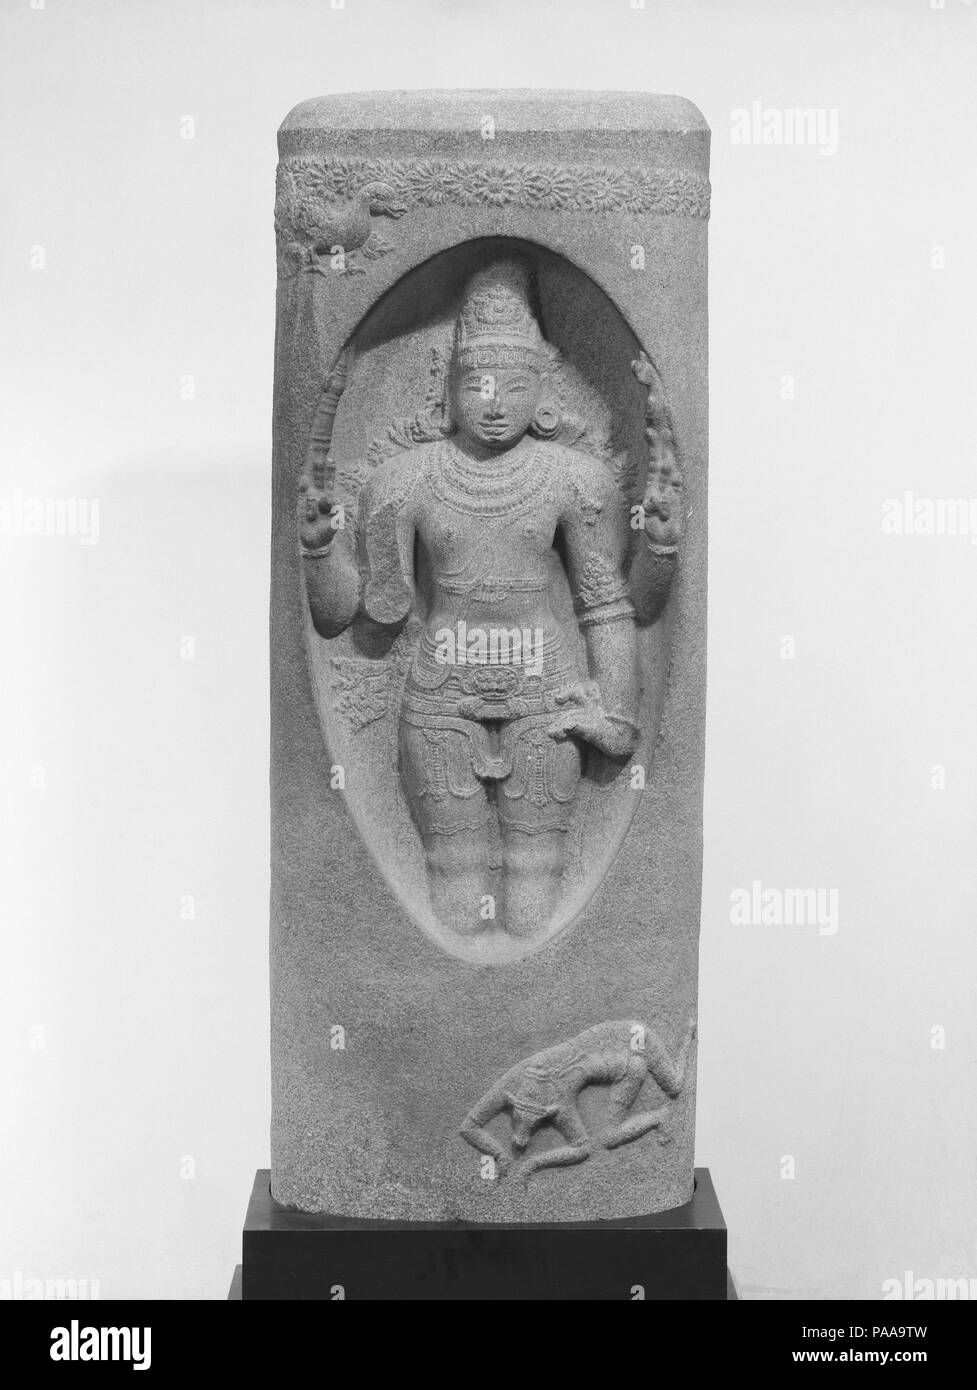 Shiva Emerging from the Linga (Lingodbhavamurti). Culture: India. Dimensions: H. 47 1/2 in. (120.7 cm); W. 18 3/4 in. (47.6 cm); D. 7 in. (17.8 cm). Date: 12th century. Museum: Metropolitan Museum of Art, New York, USA. - Stock Image